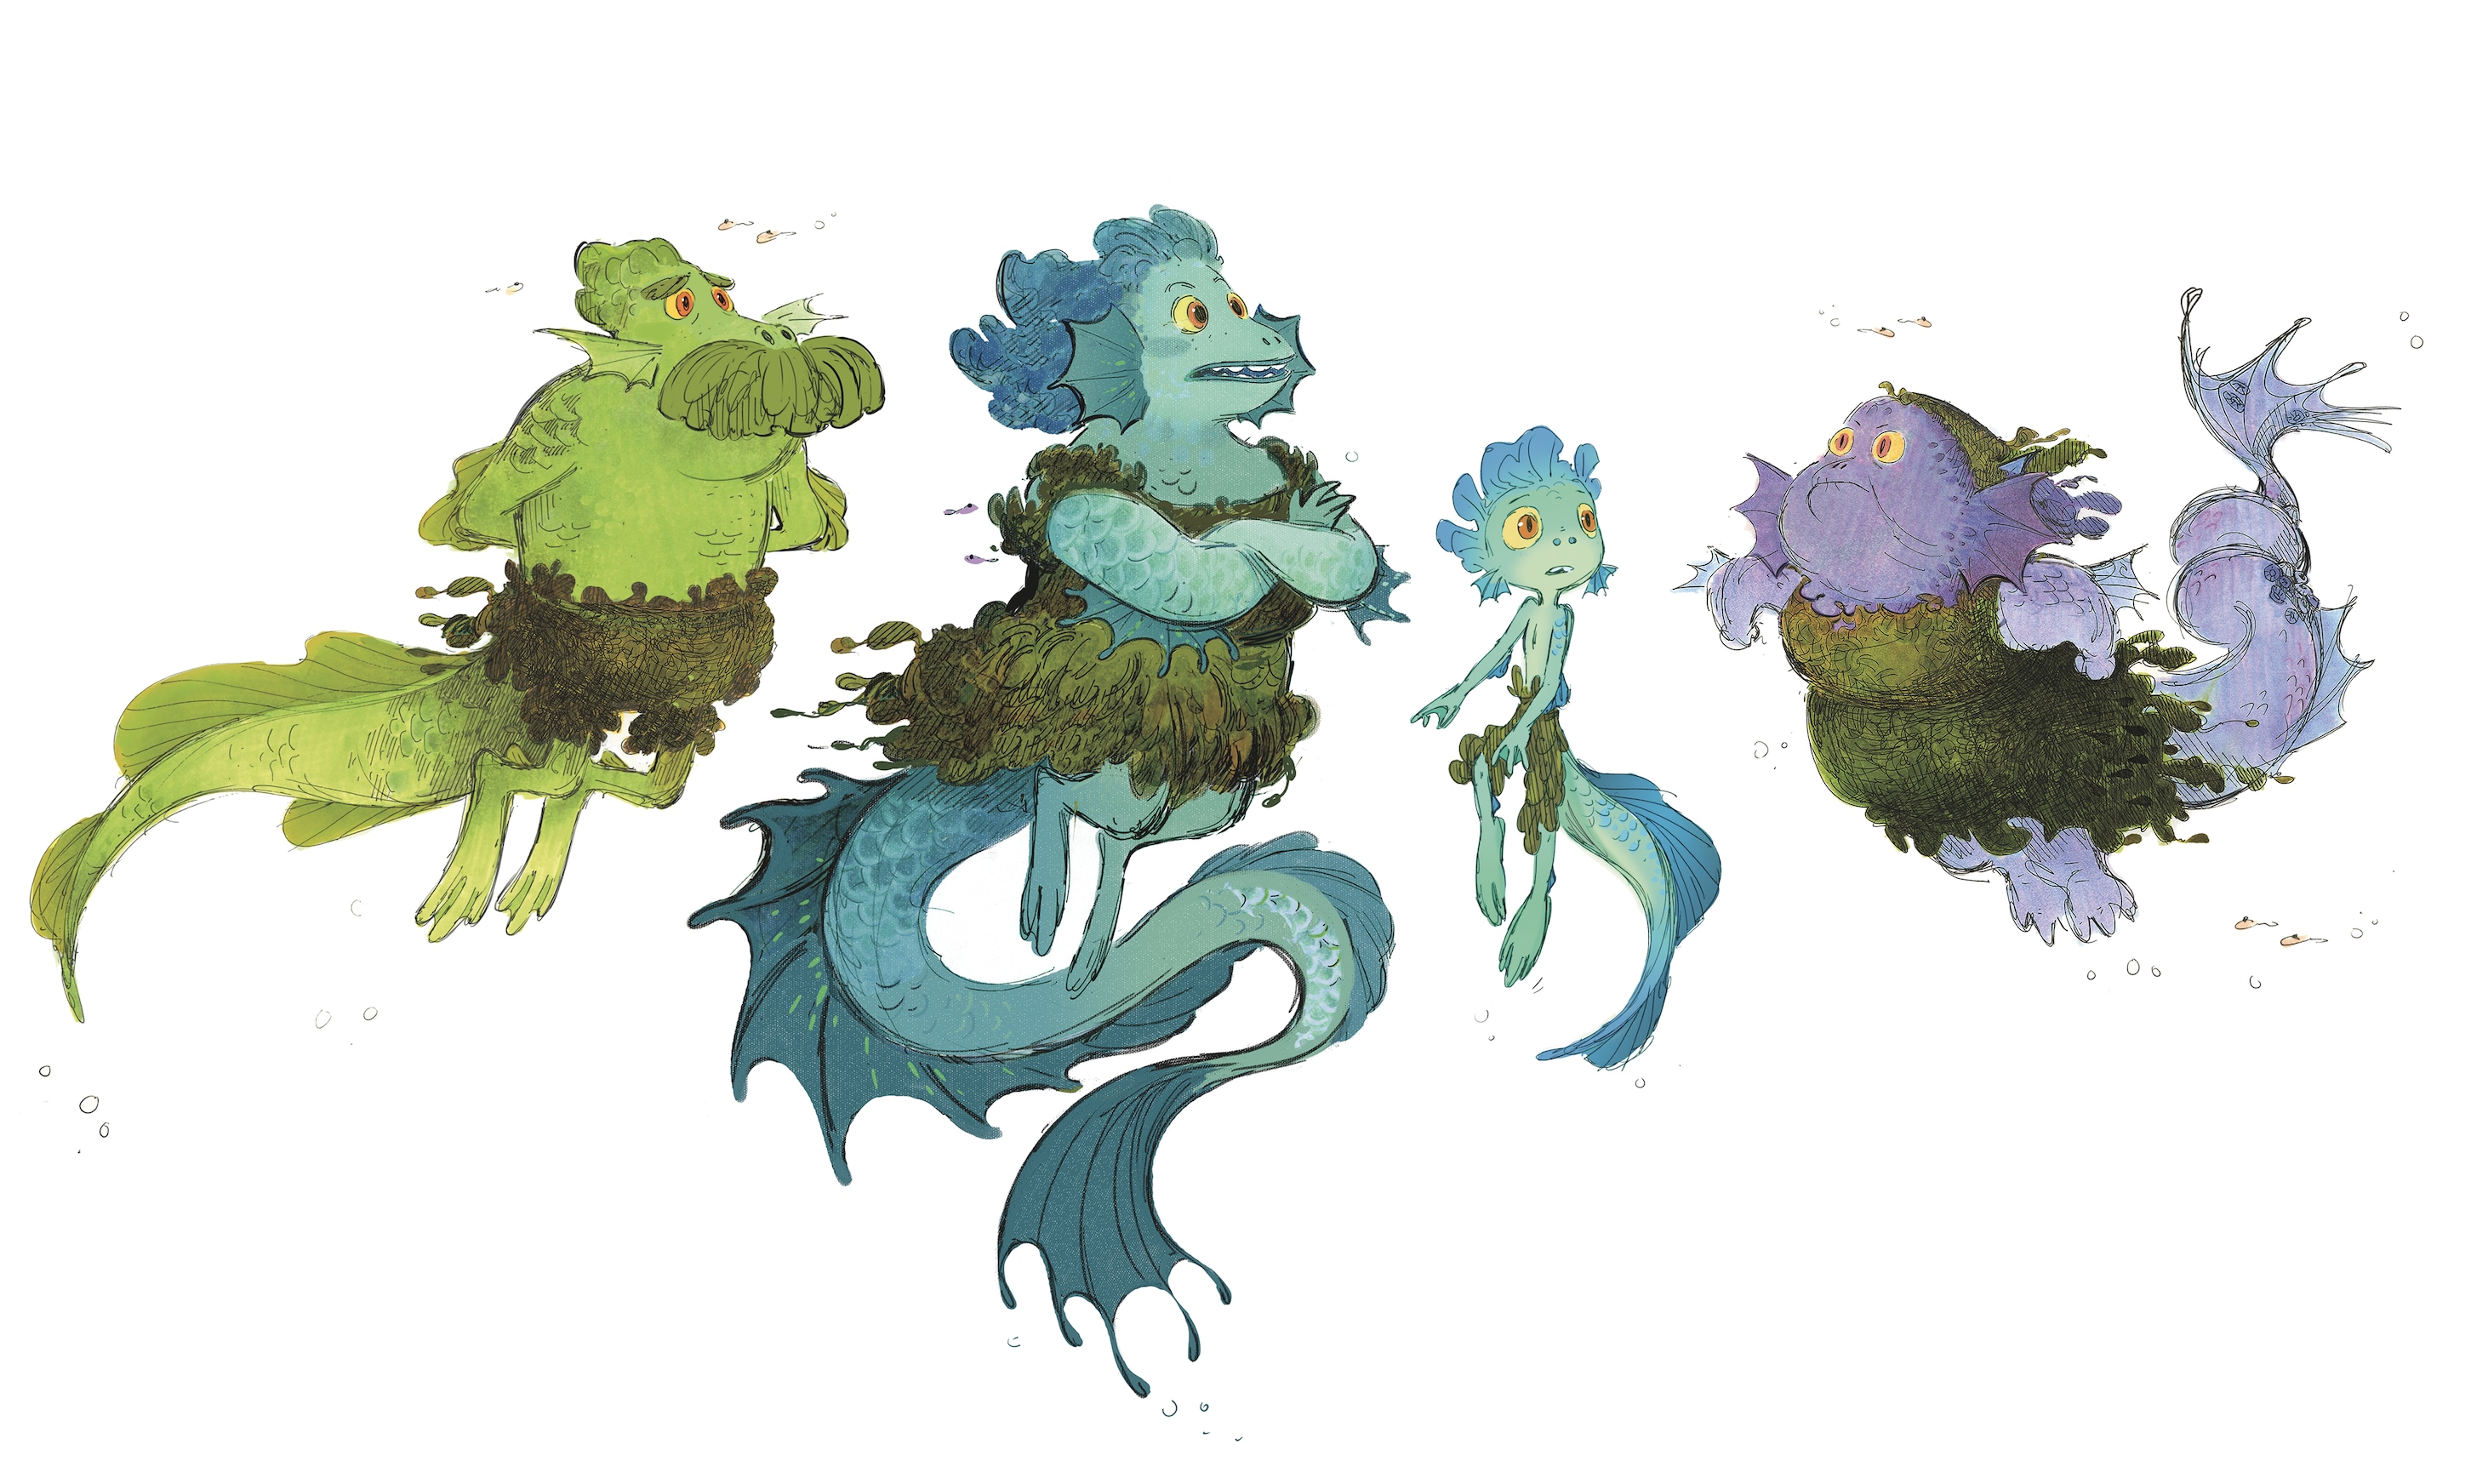 character designs of Luca and his family as sea monsters